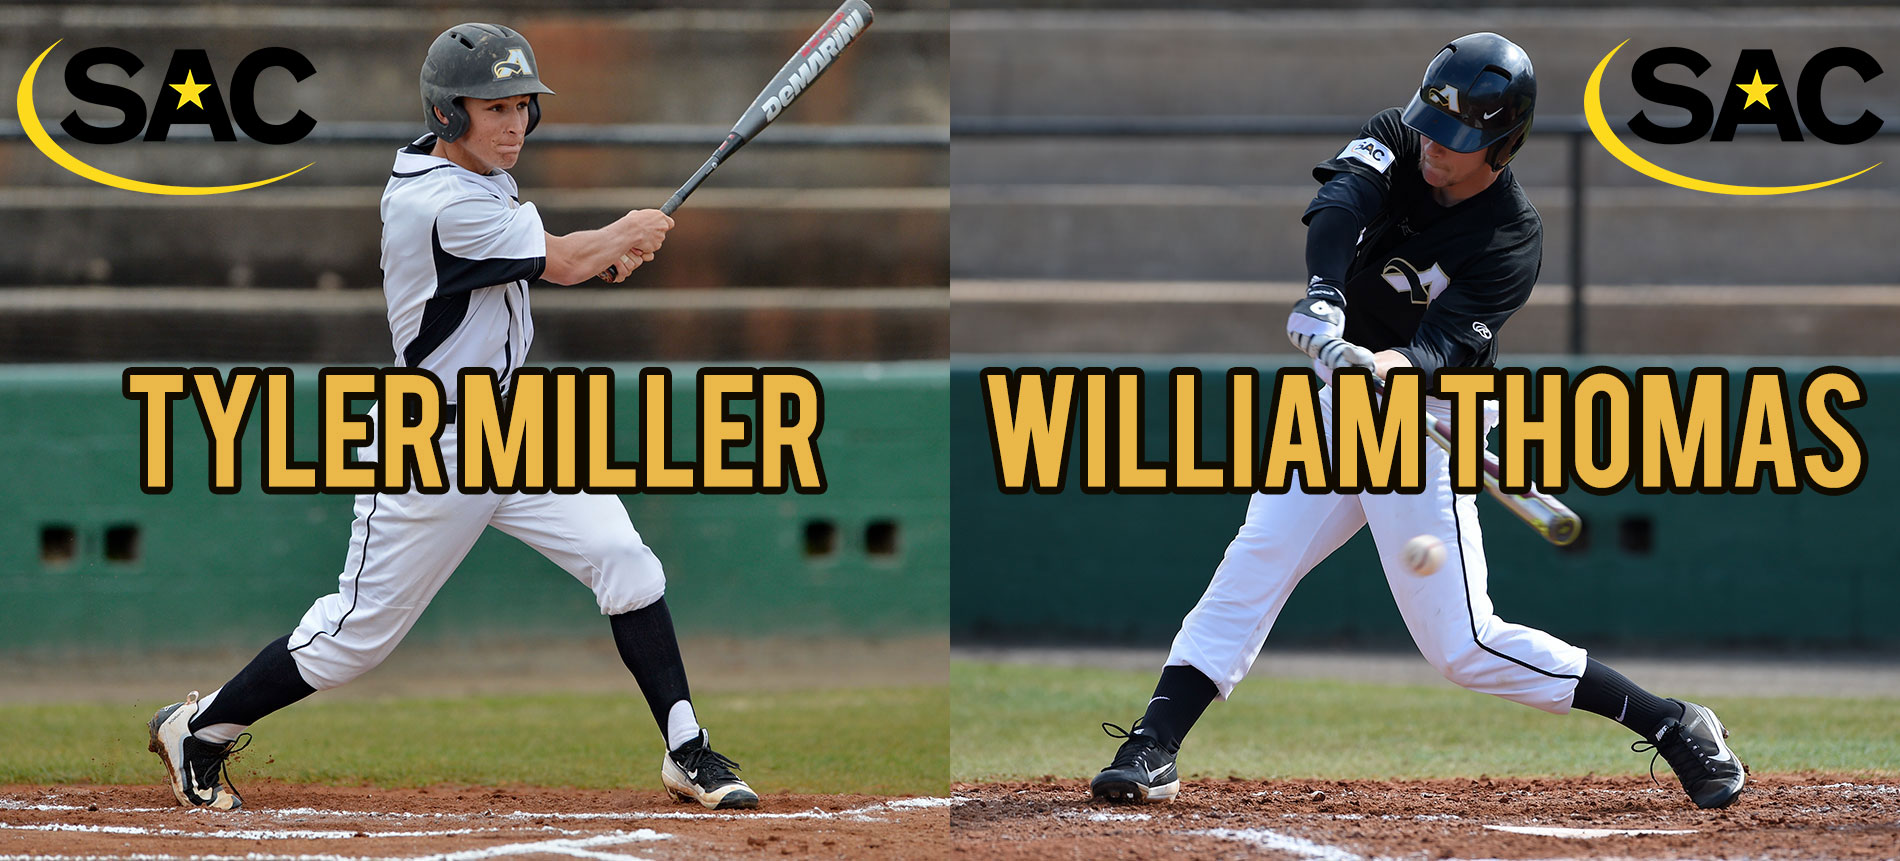 Thomas and Miller Earn Preseason All-Conference Honors; Trojans Tabbed 10th in Preseason SAC Baseball Coaches' Poll